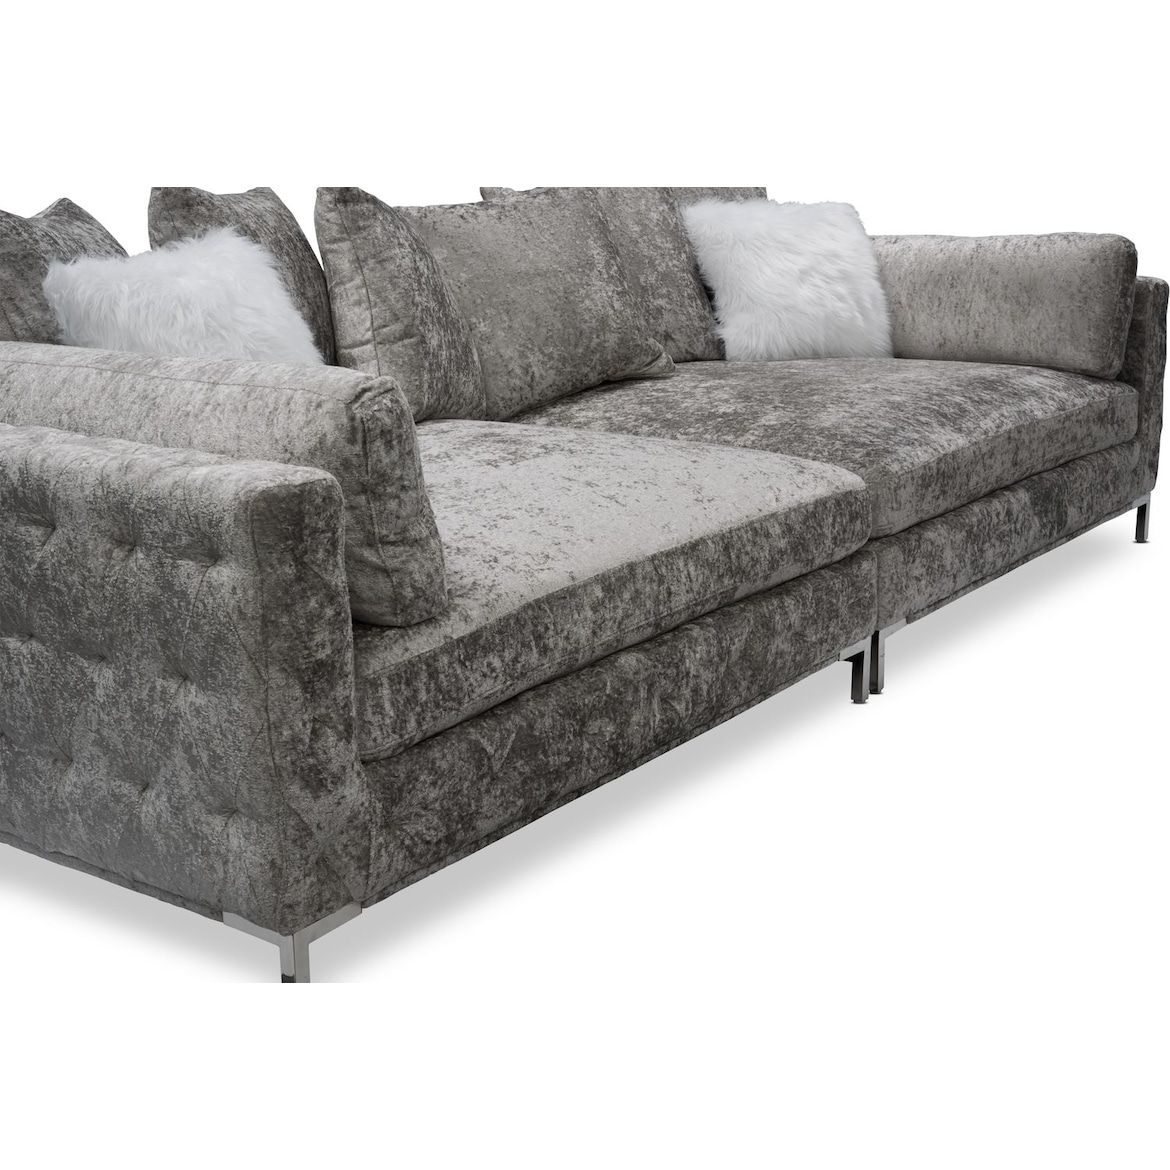 Milan 2 Piece Sofa Value City Furniture And Mattresses Furniture Sofa City Living Room